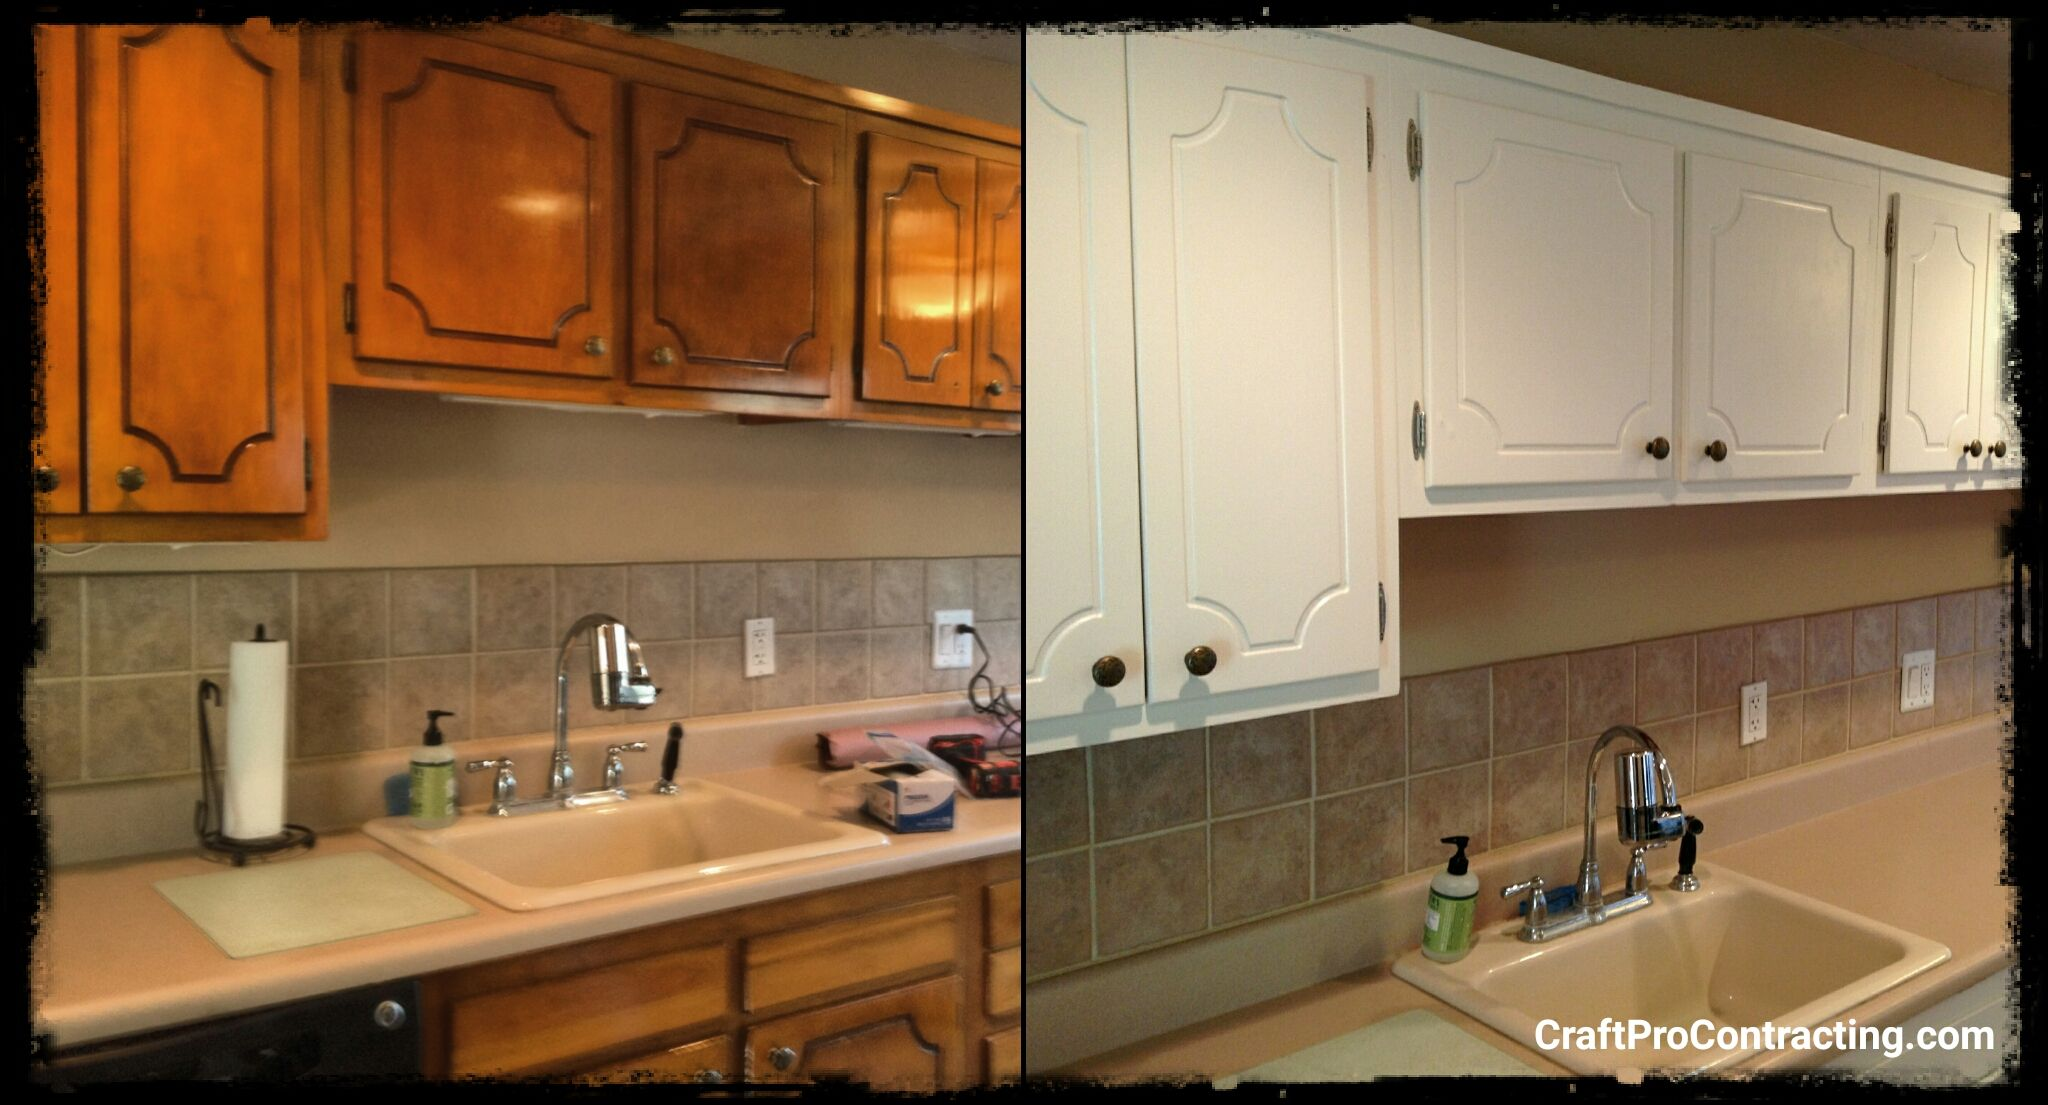 Cabinet Refinishing Before After From Glazed Stained And Polyurethane Coated Cabinets To Pure W Refinishing Cabinets Interior Renovation Kitchen Renovation